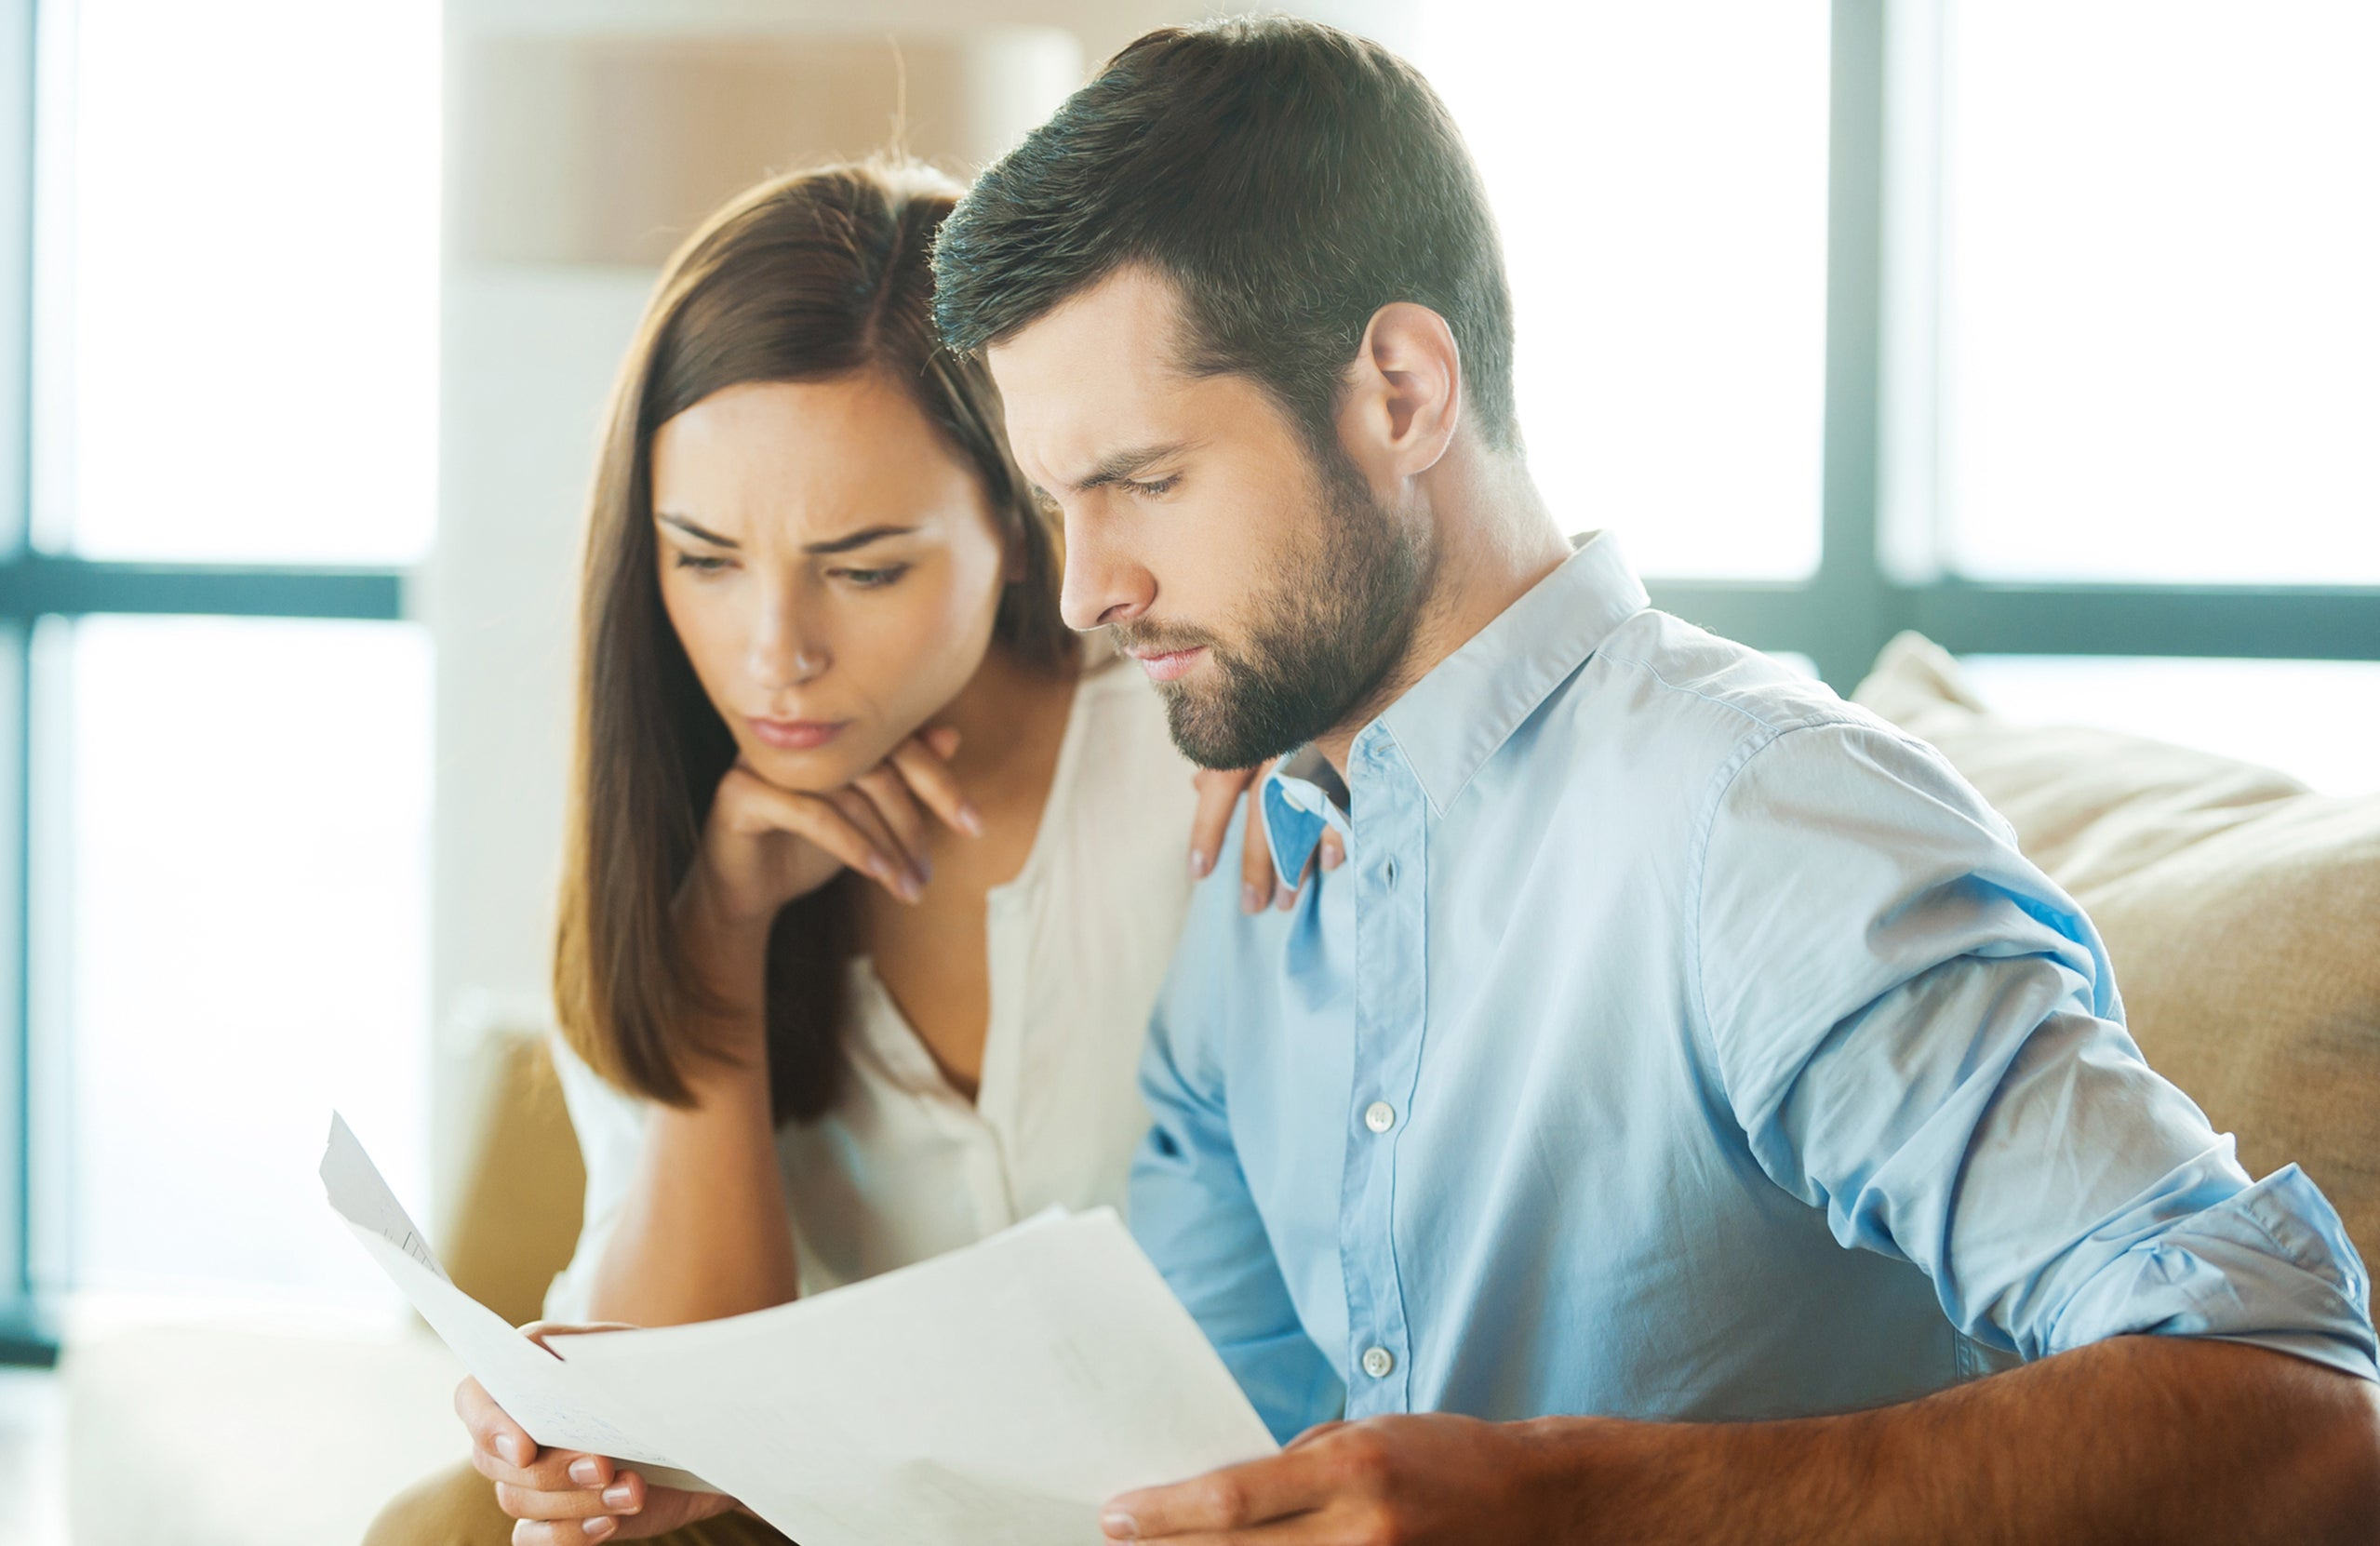 These tips can help ensure their bad credit doesn't indirectly affect yours.